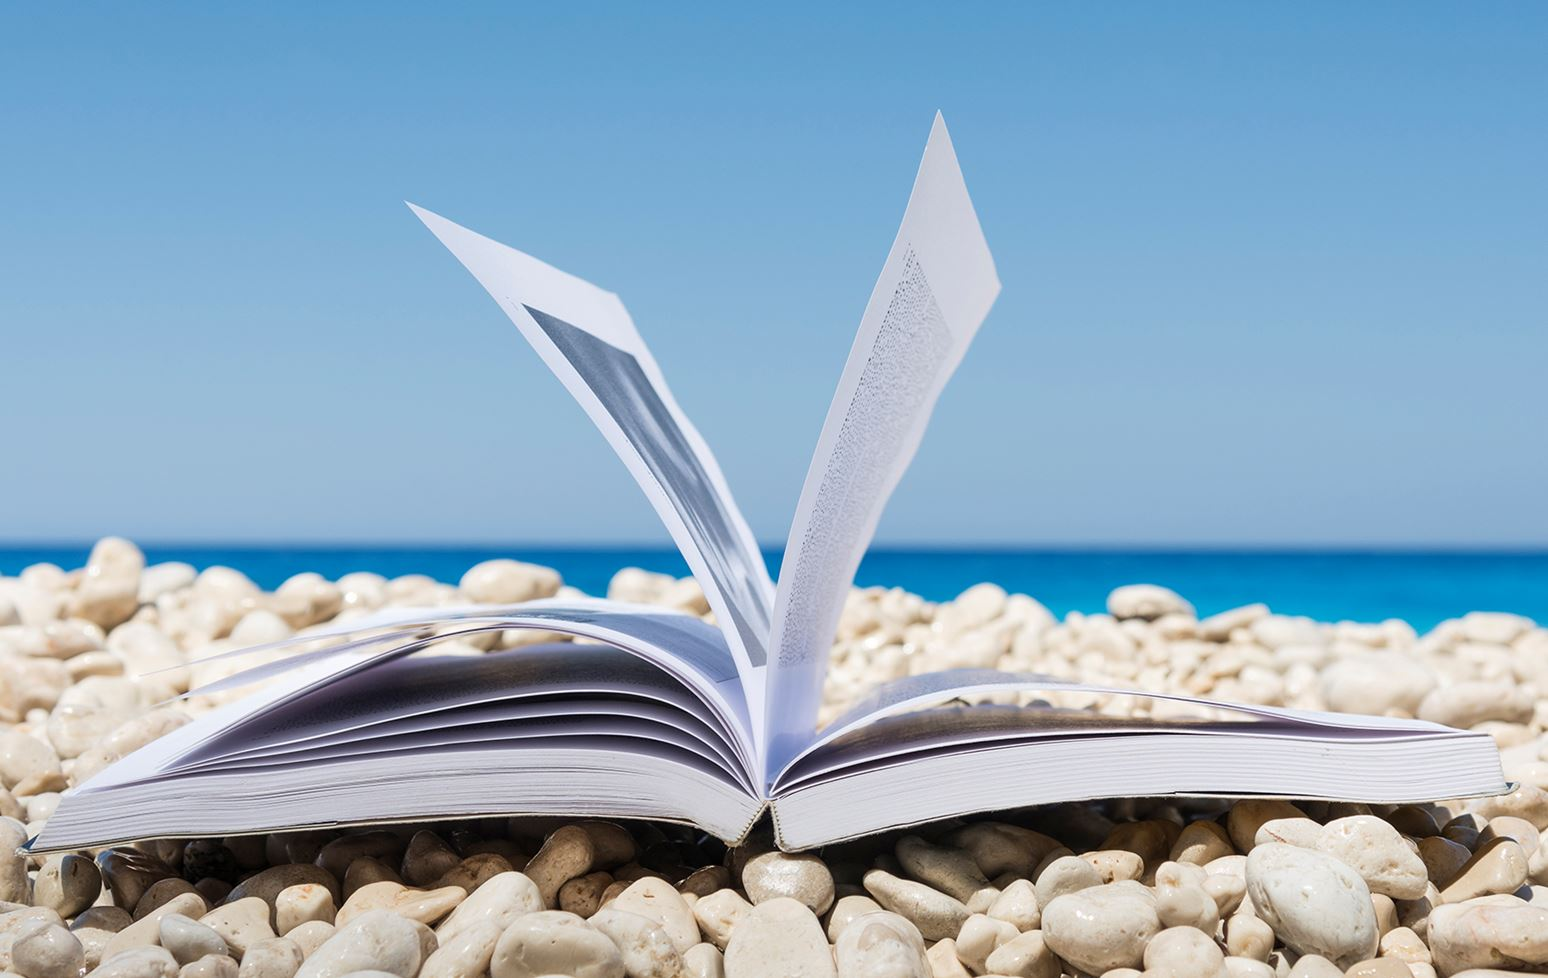 Your summer 2019 business reading guide